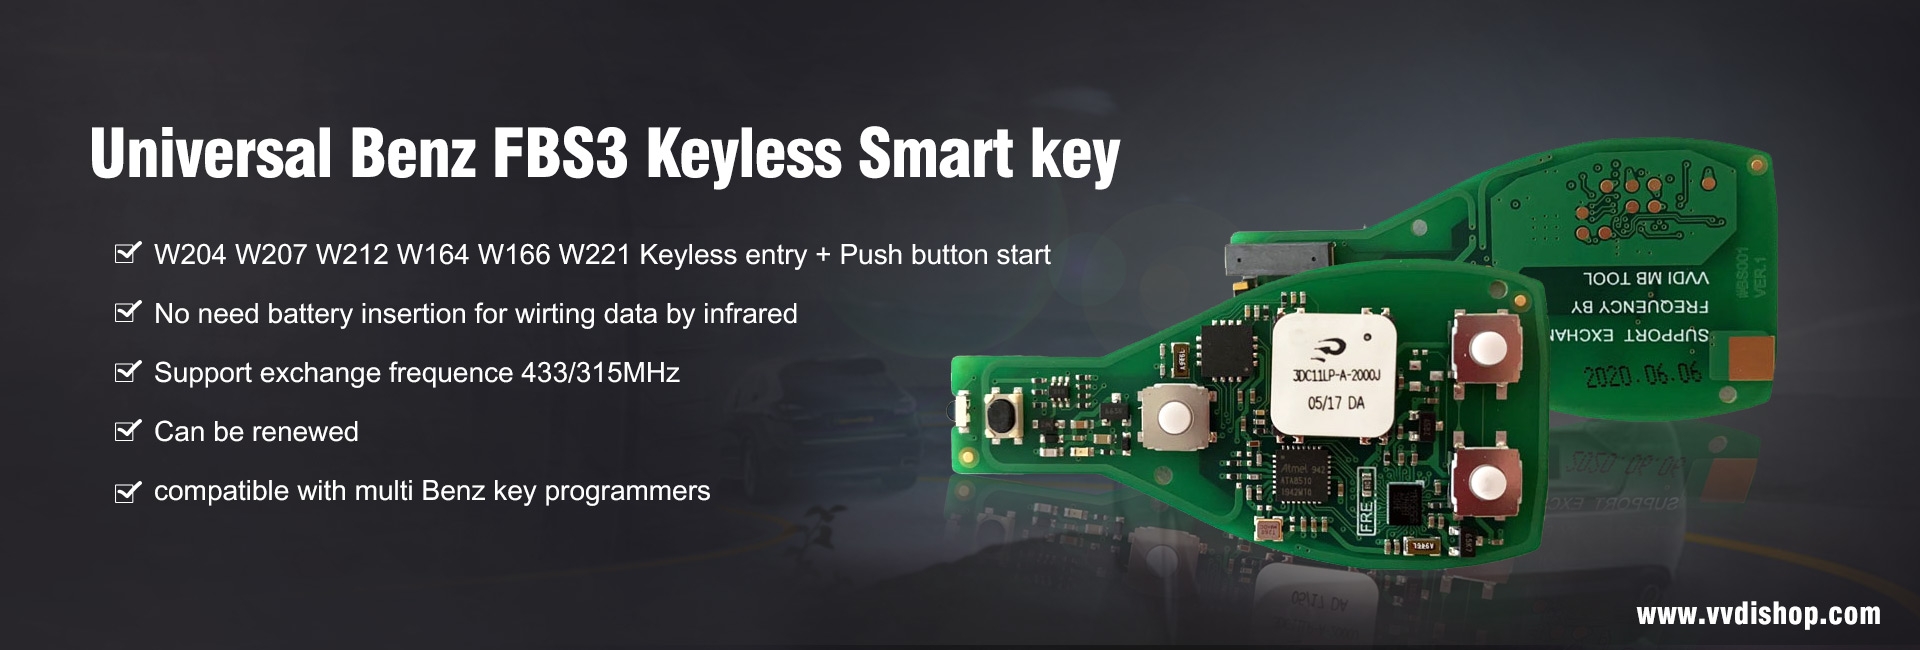 xhorse-vvdi-benz-fbs3-smart-key